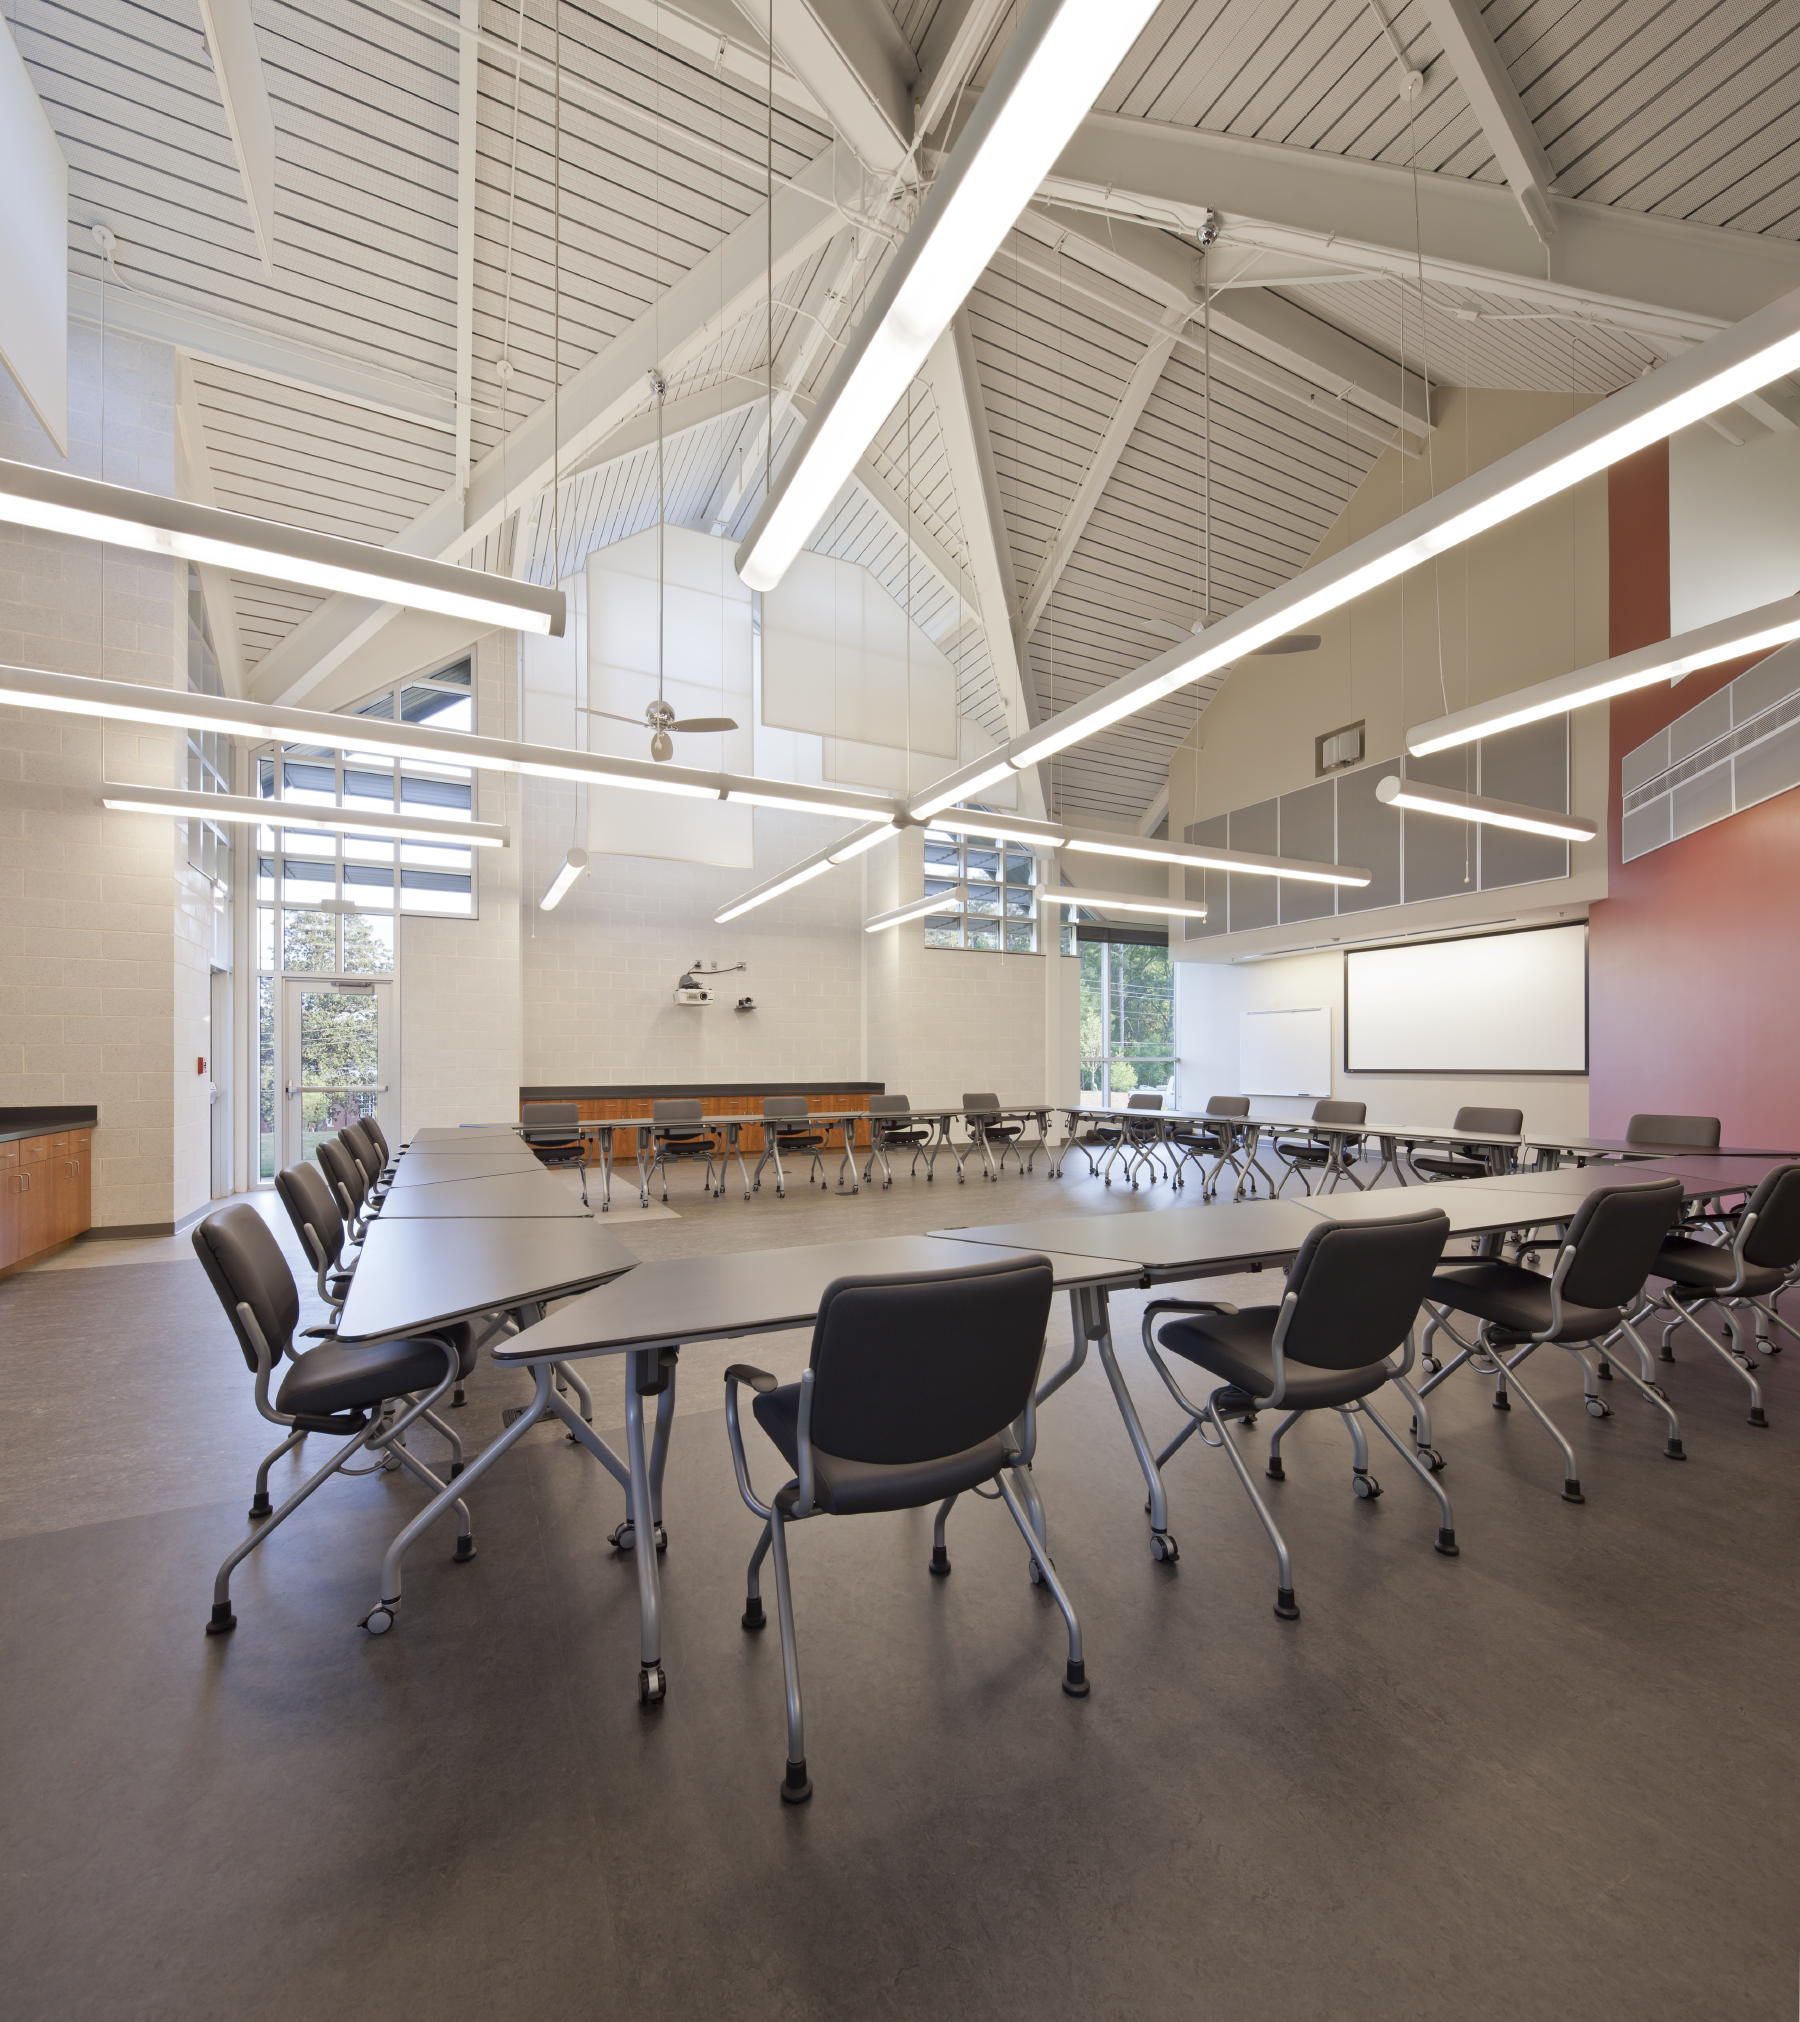 The Vernon S. Broyles Jr. Leadership Center's signature corner classroom is a large, contemplative multipurpose space with two gabled windows and flexible seating. c 2012 Jonathan Hillyer / Atlanta